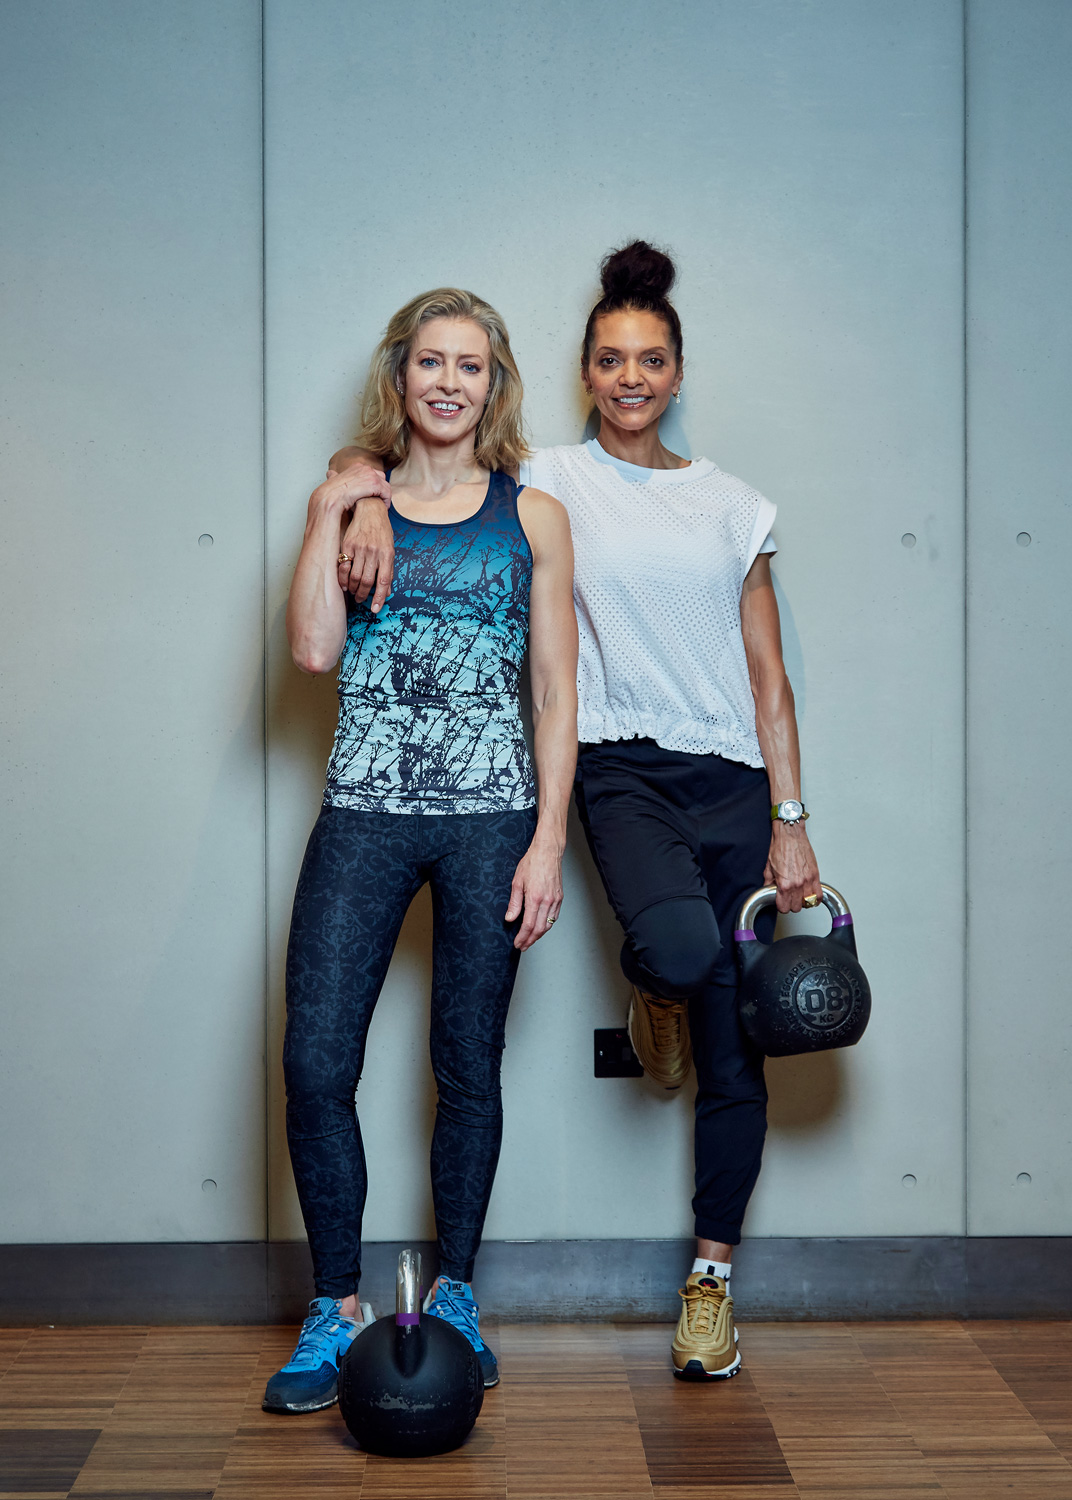 With top personal trainer Efua Baker, photograph by Chris McAndrew at KXU